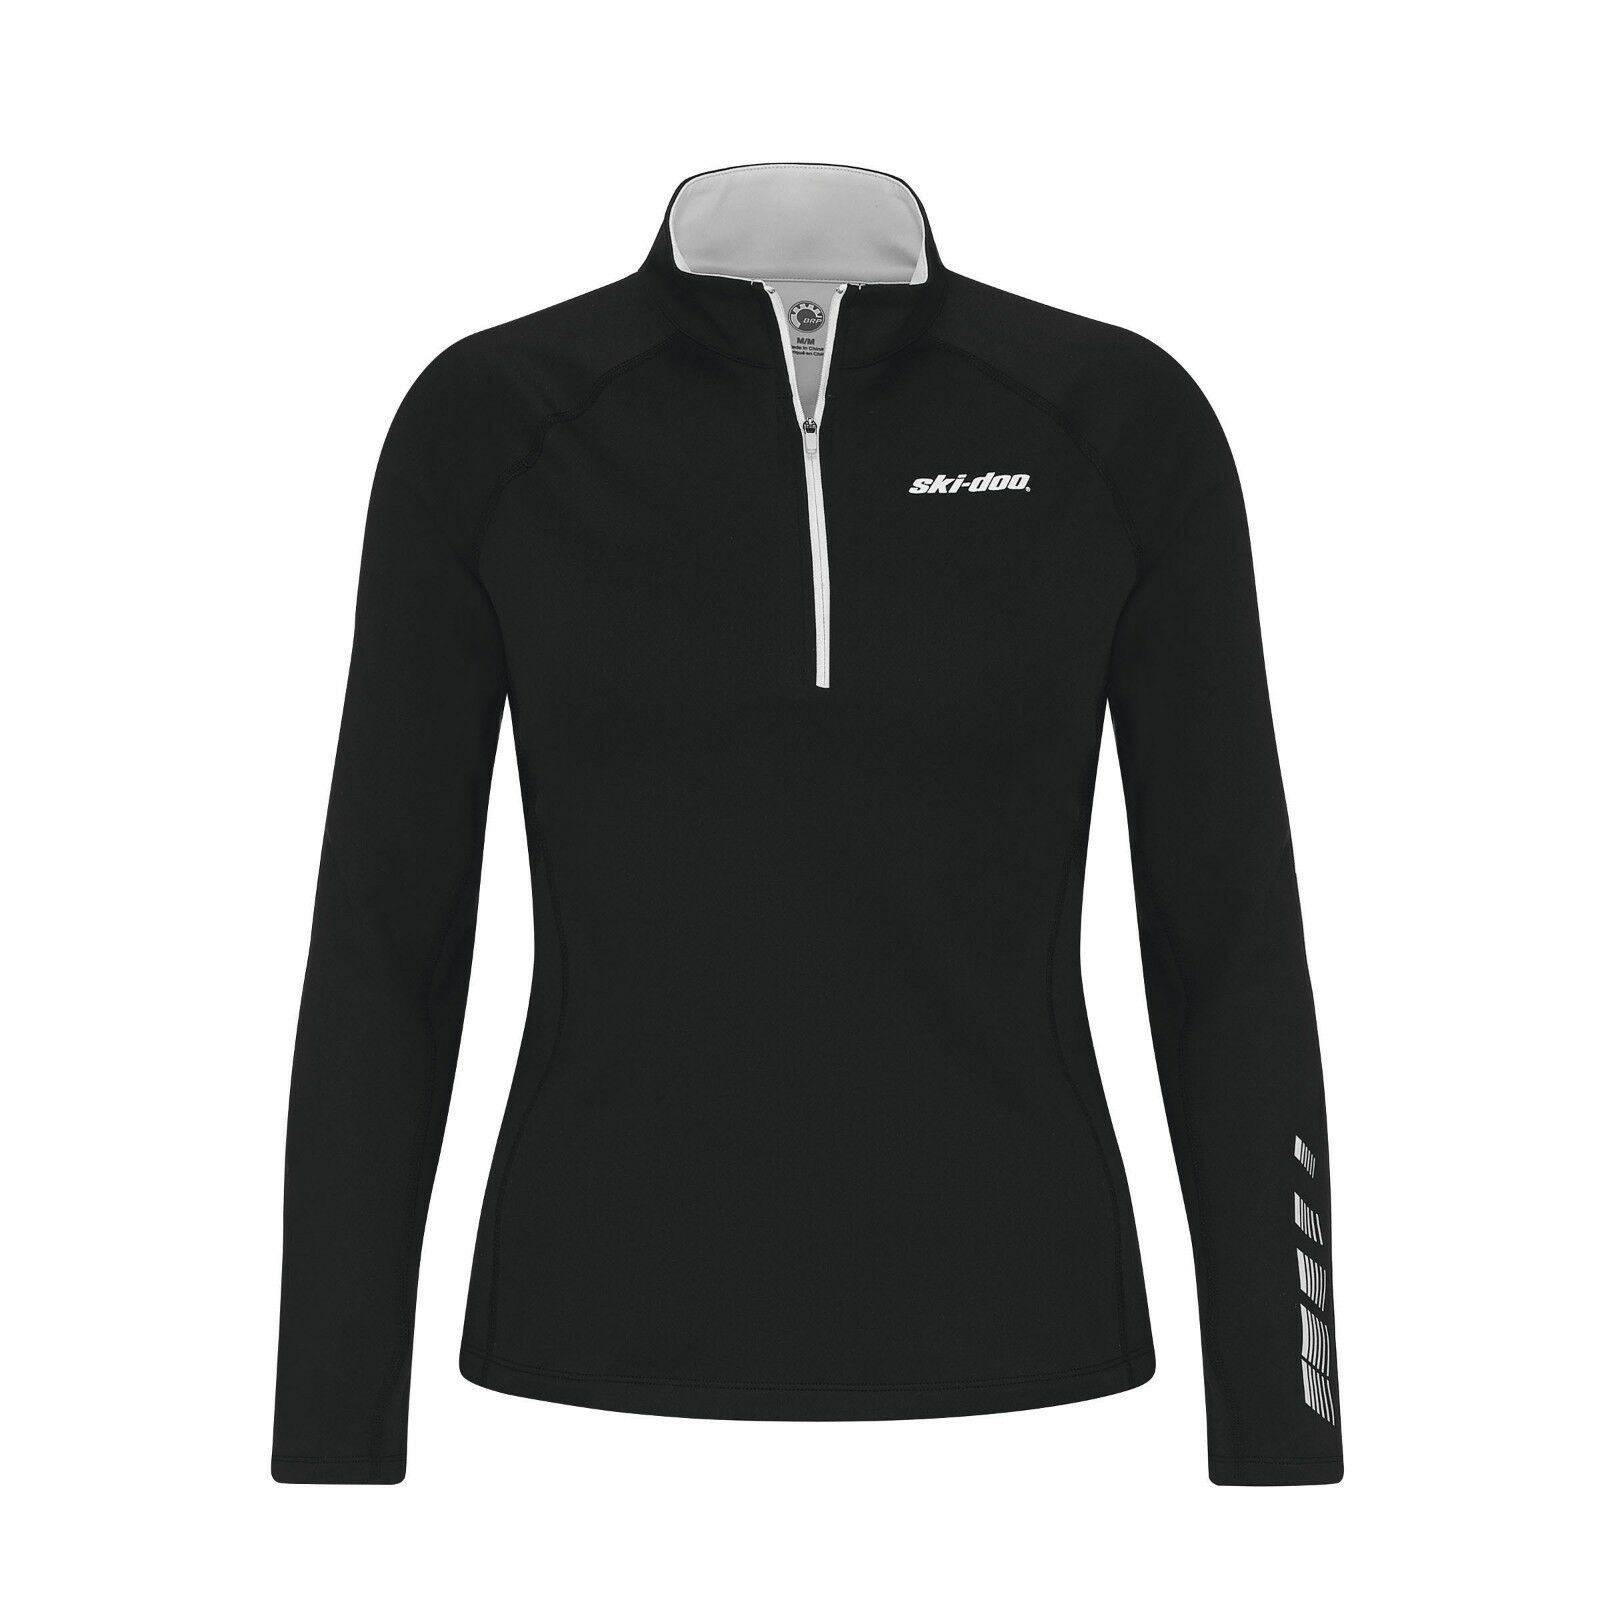 2019 SKI-DOO THERMAL BASE LAYER TOP 4540300409 LADIES'  SMALL S GREY  team promotions